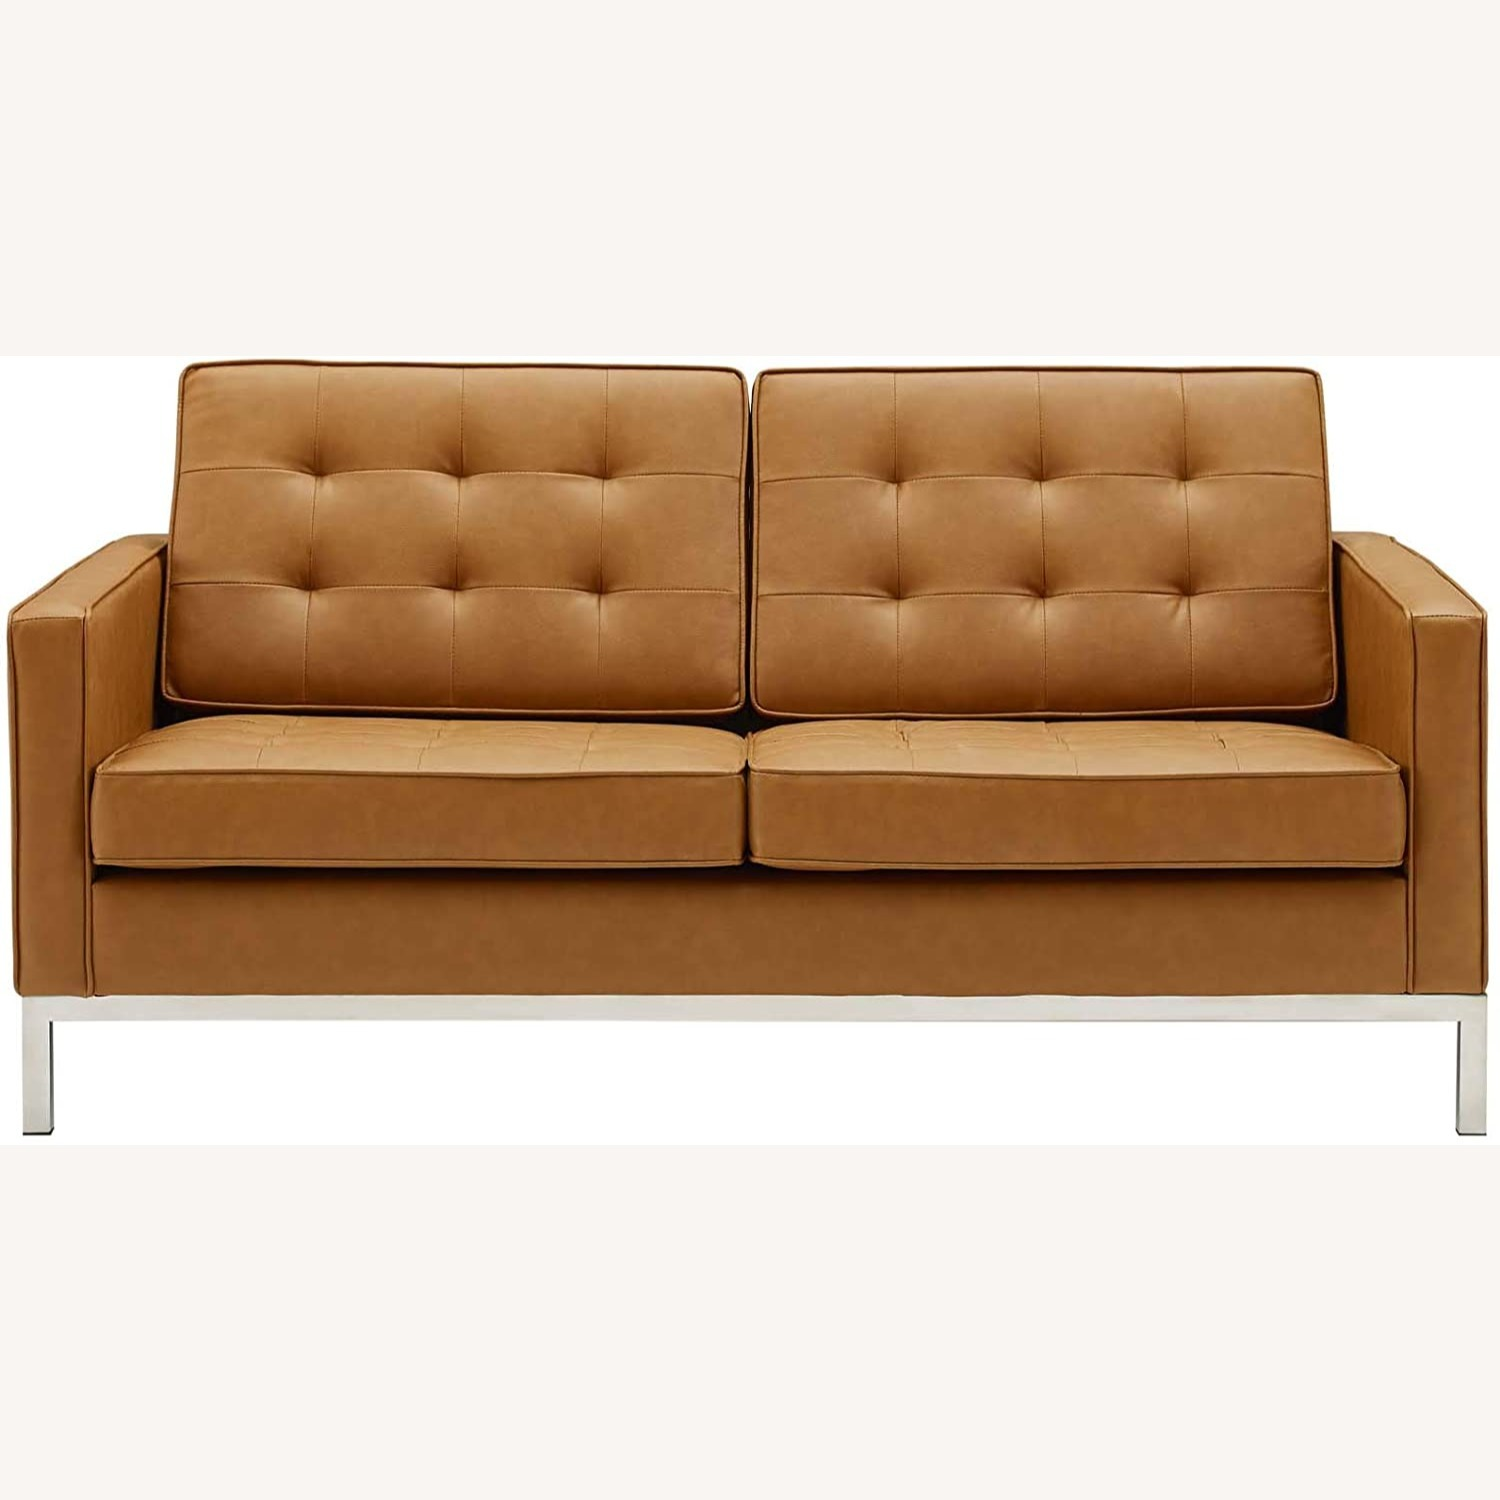 Modern Loveseat In Silver Tan Faux Leather Finish - image-1